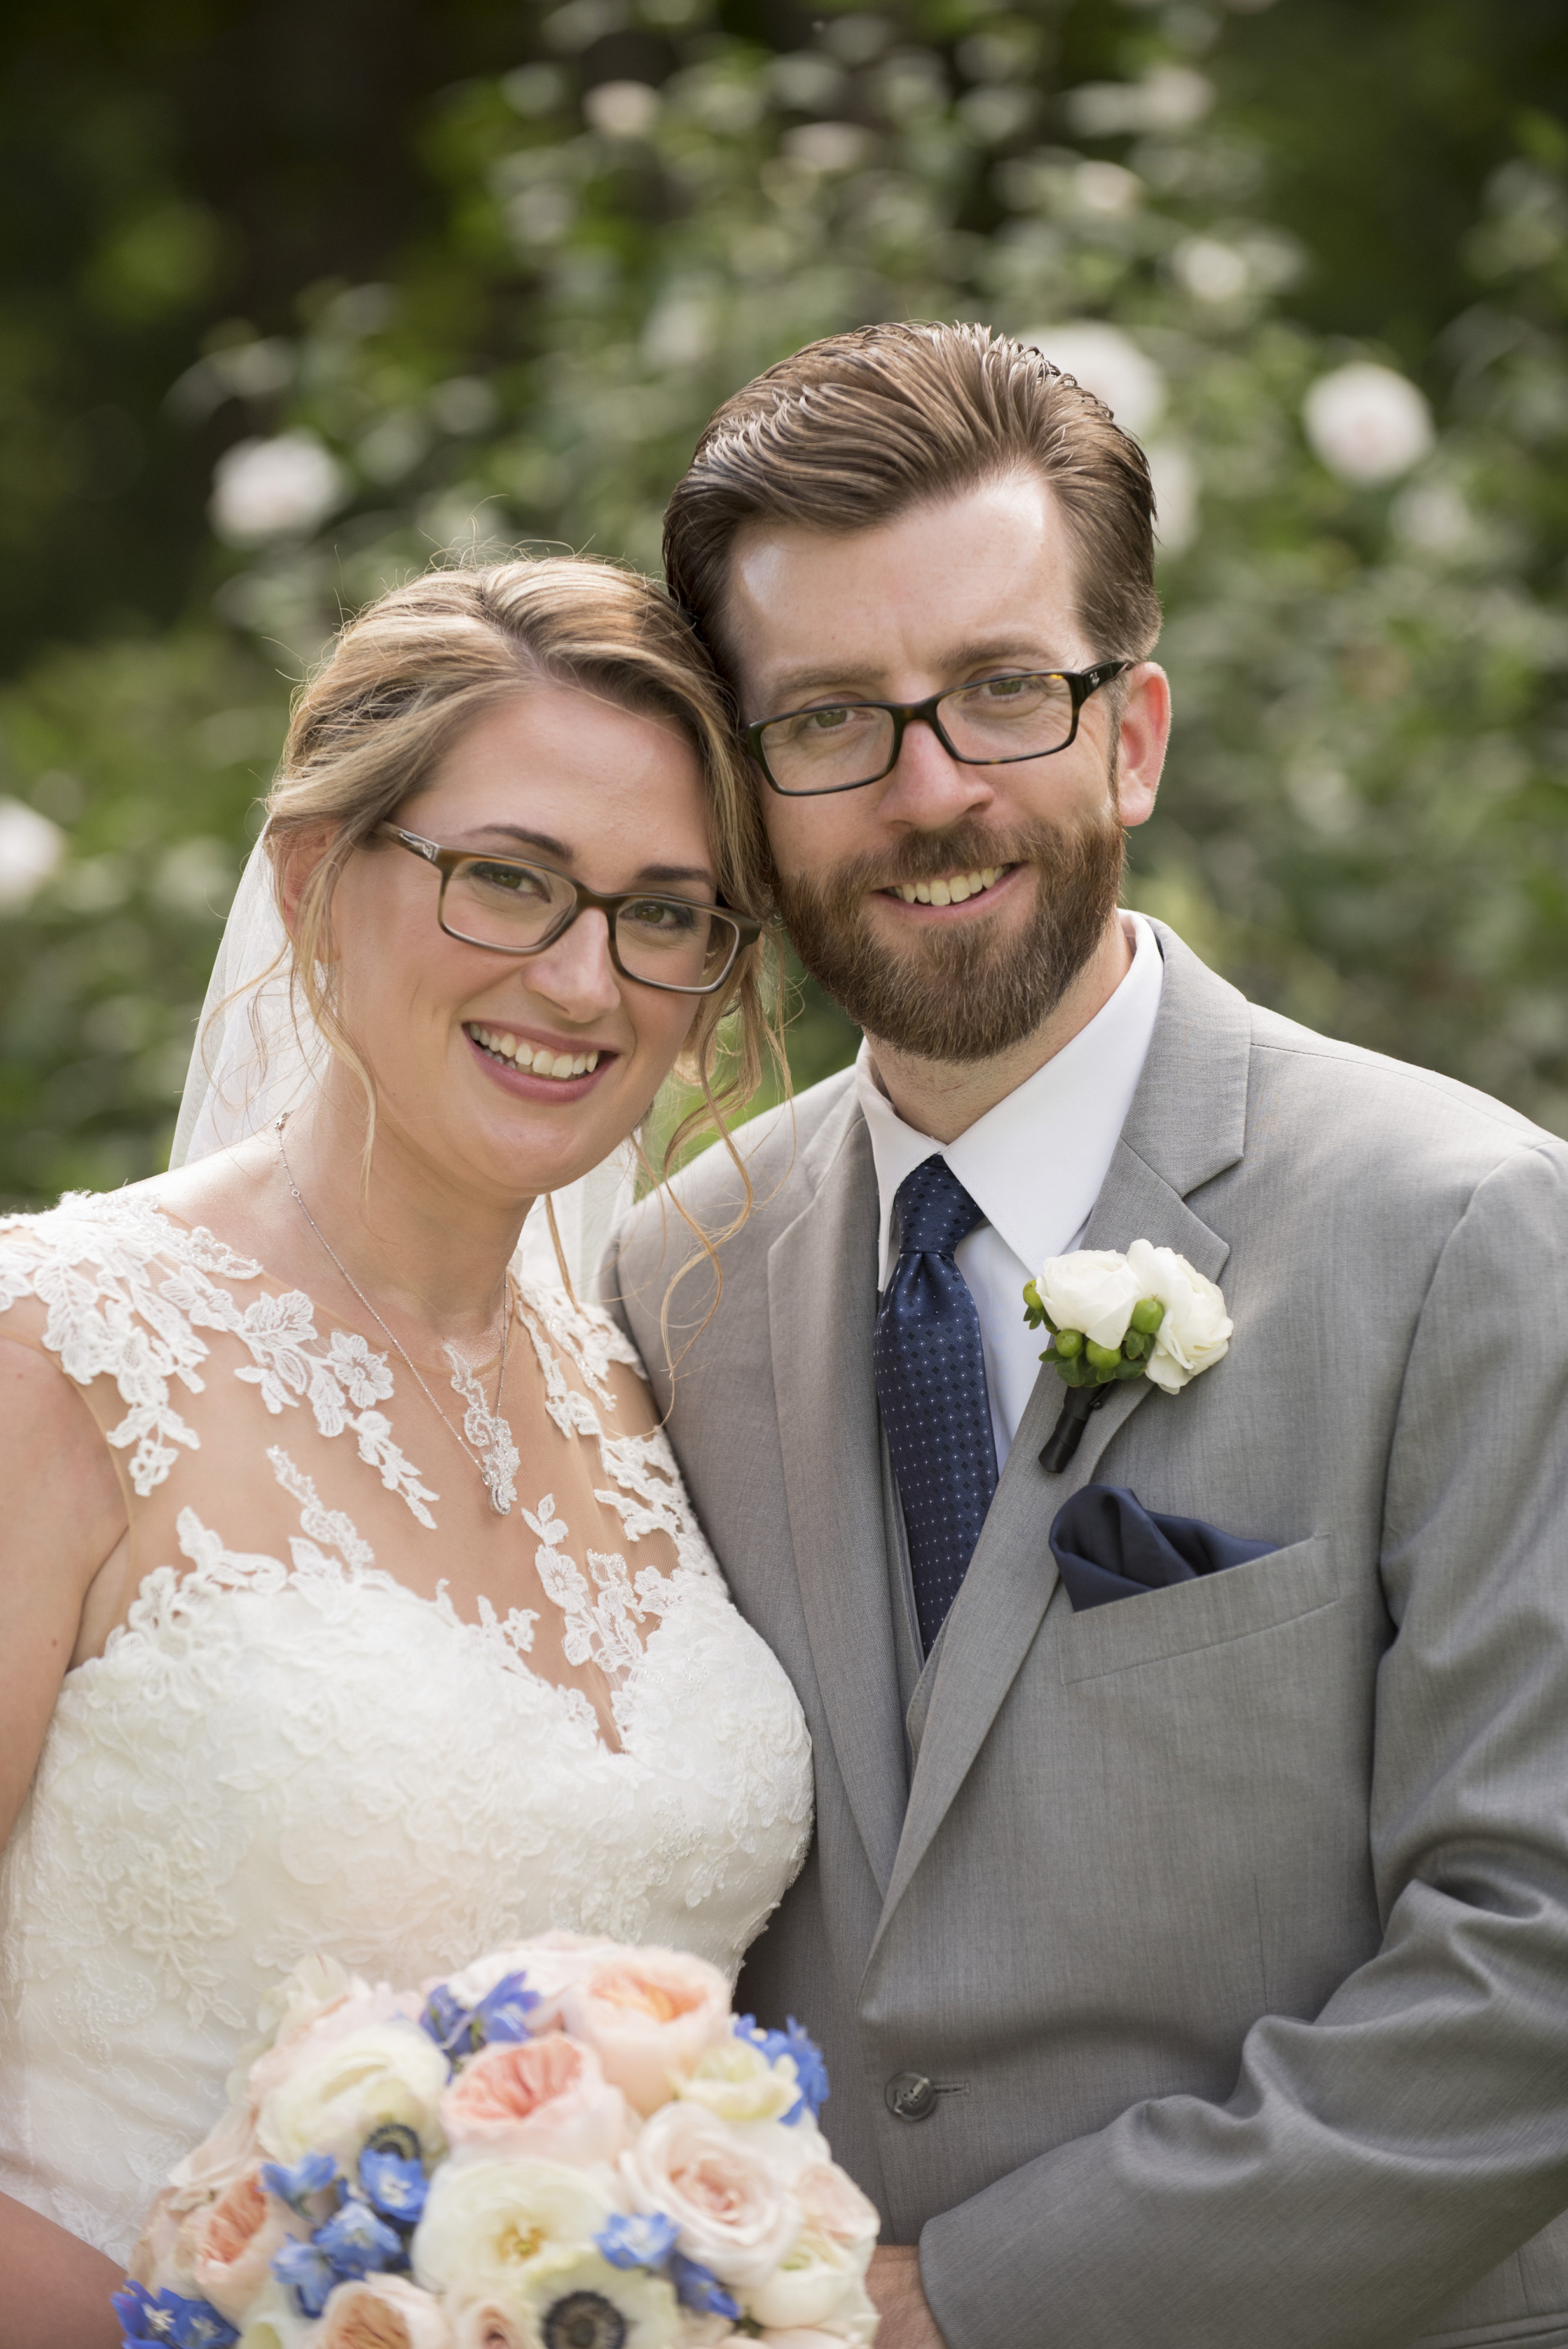 Bridal makeup for glasses wearers